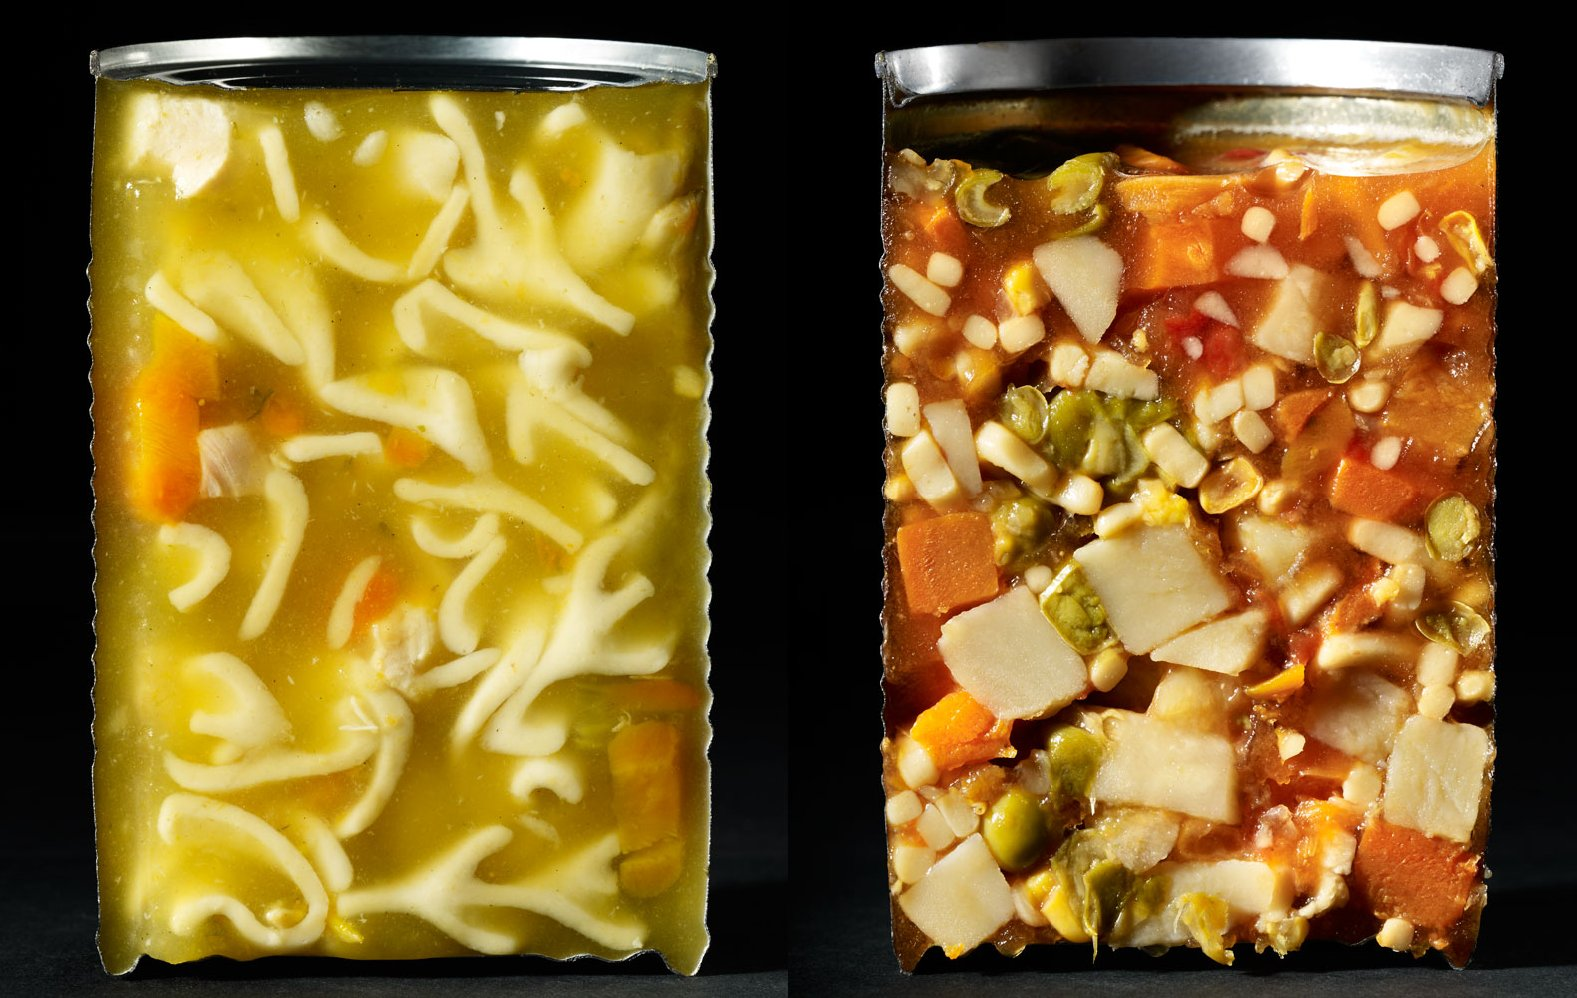 Canned soups. Photo: Courtesy of Beth Galton